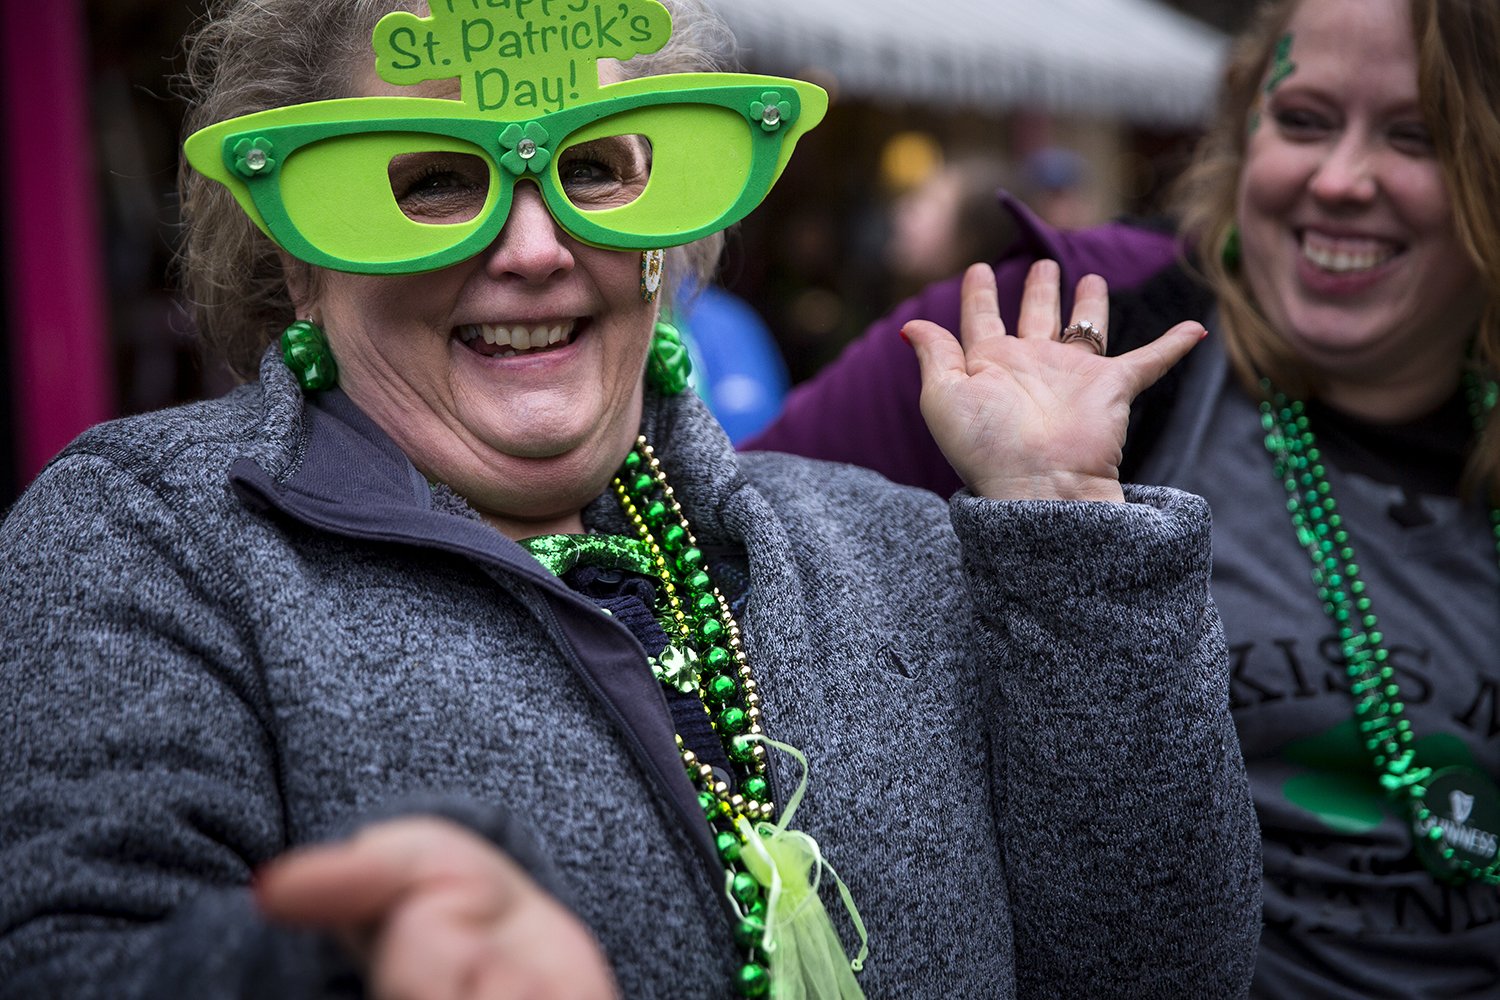 Diane Motley enjoys the St. Patrick's Day Parade along Sixth Street Saturday, March 17, 2018  in Springfield, Ill. [Rich Saal/The State Journal-Register]